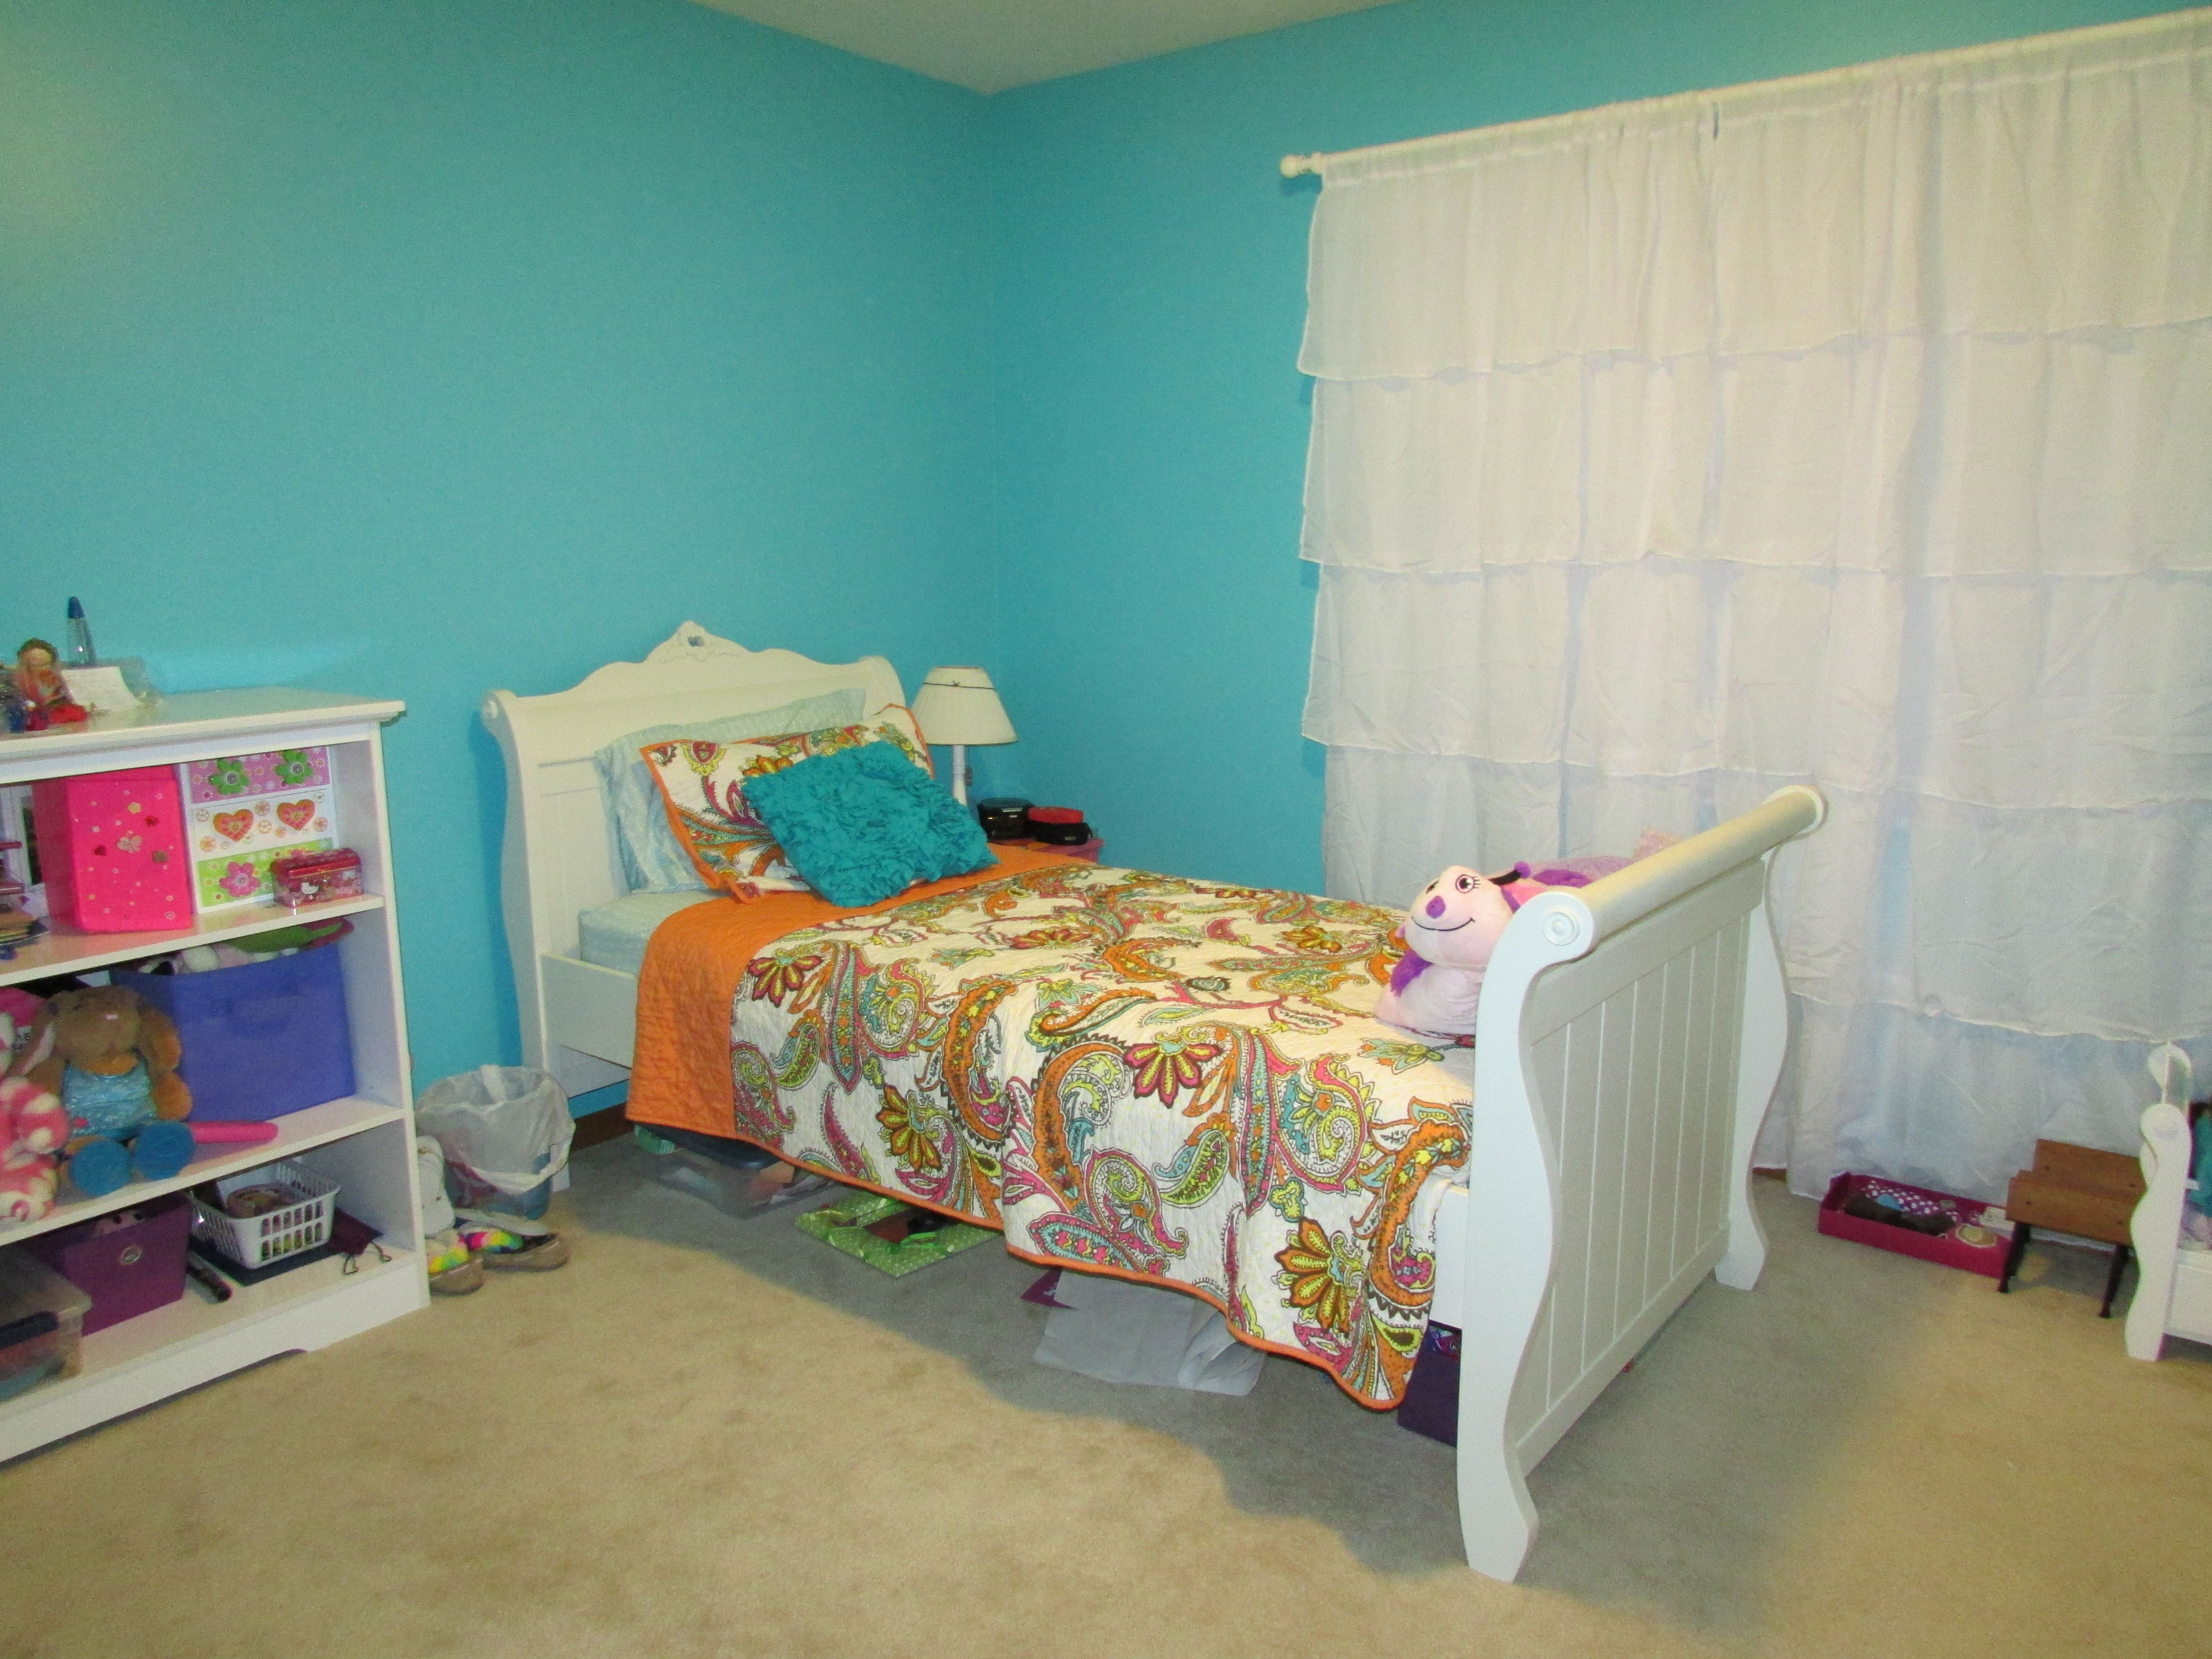 New Colours For Bedrooms K 39s New Room New Paint Color Gem Turquoise By Behr